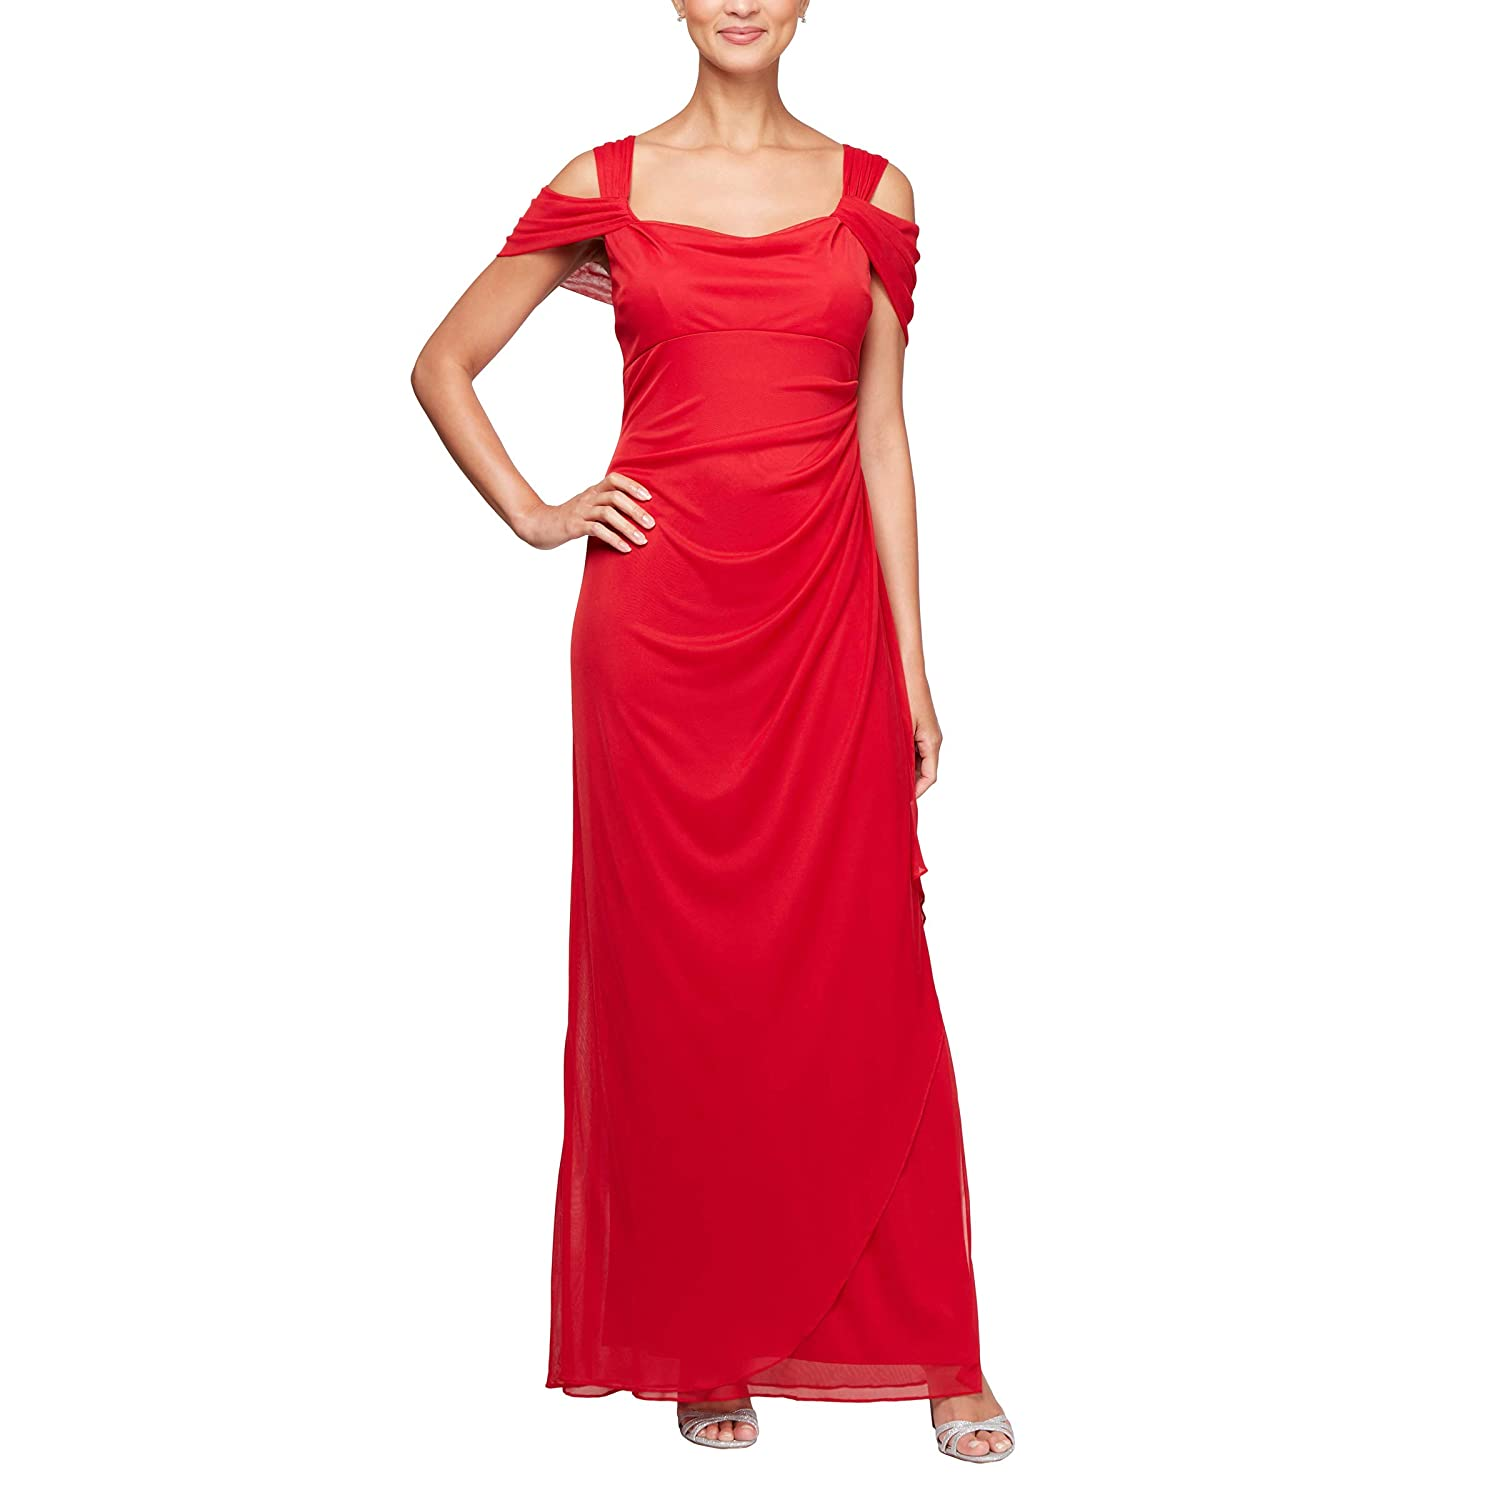 Bright Red Alex Evenings Women's ColdShoulder Dress (Petite and Regular)